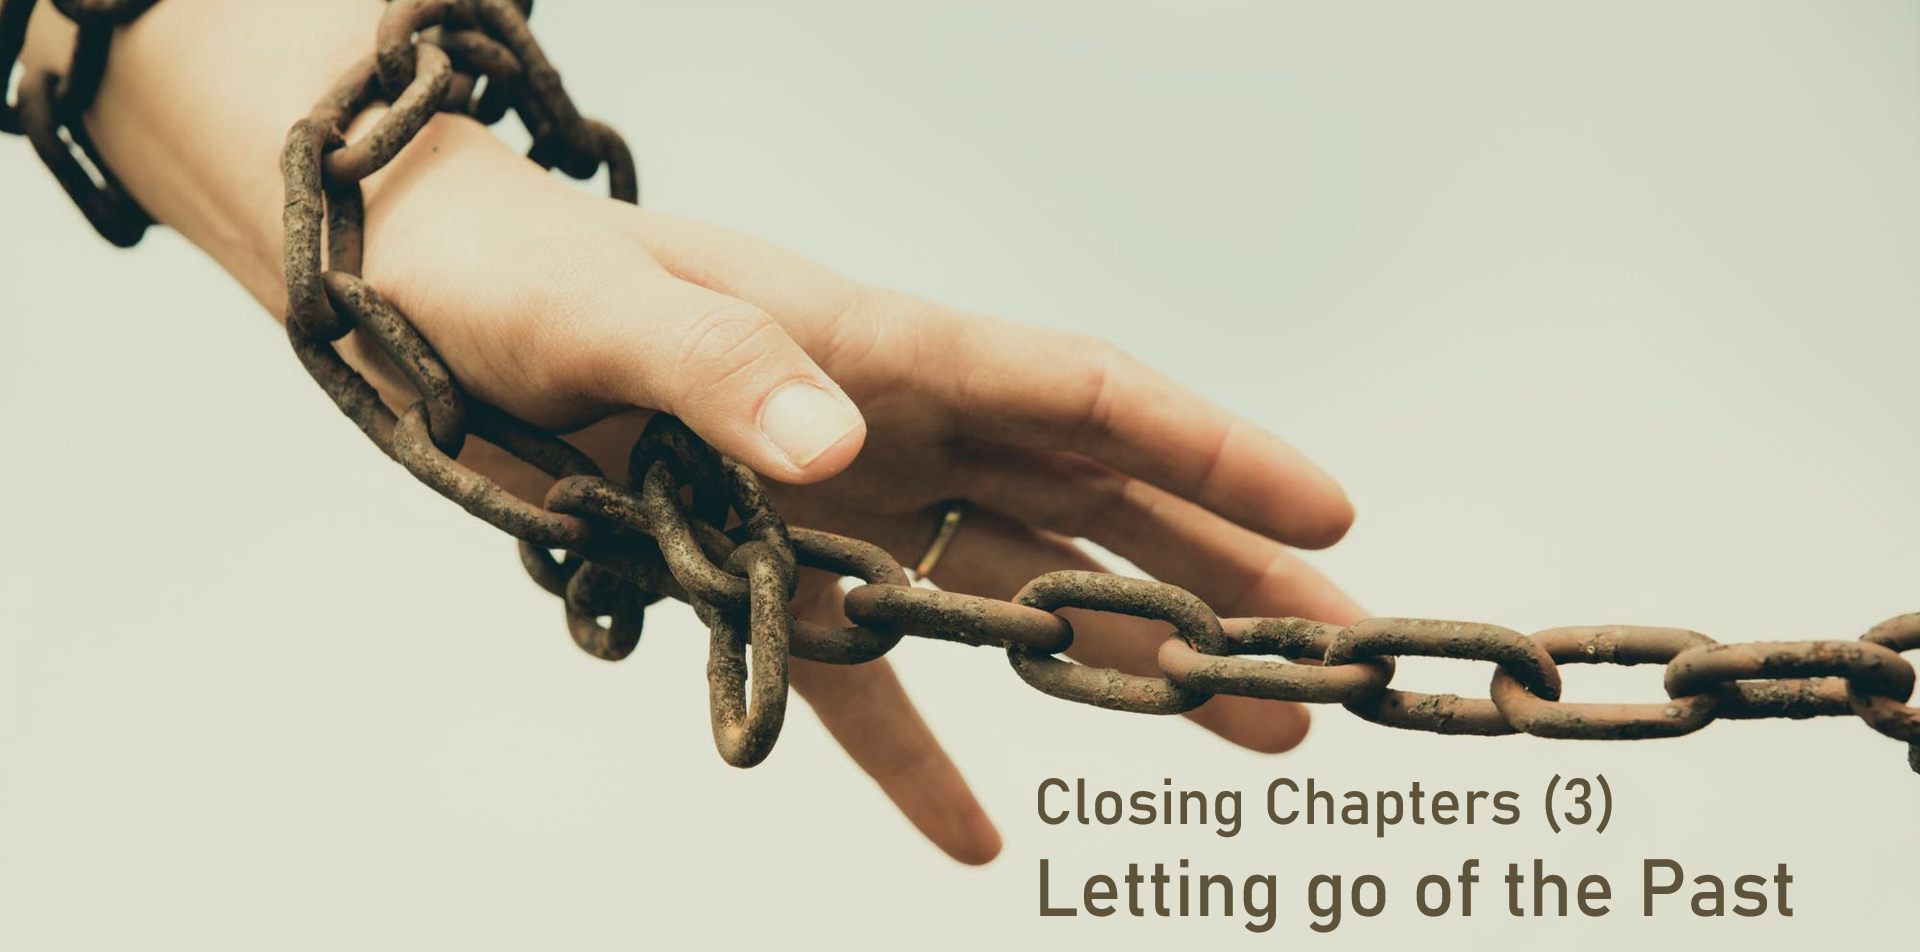 Closing Chapters – Living free from the past (part 3 of 4)